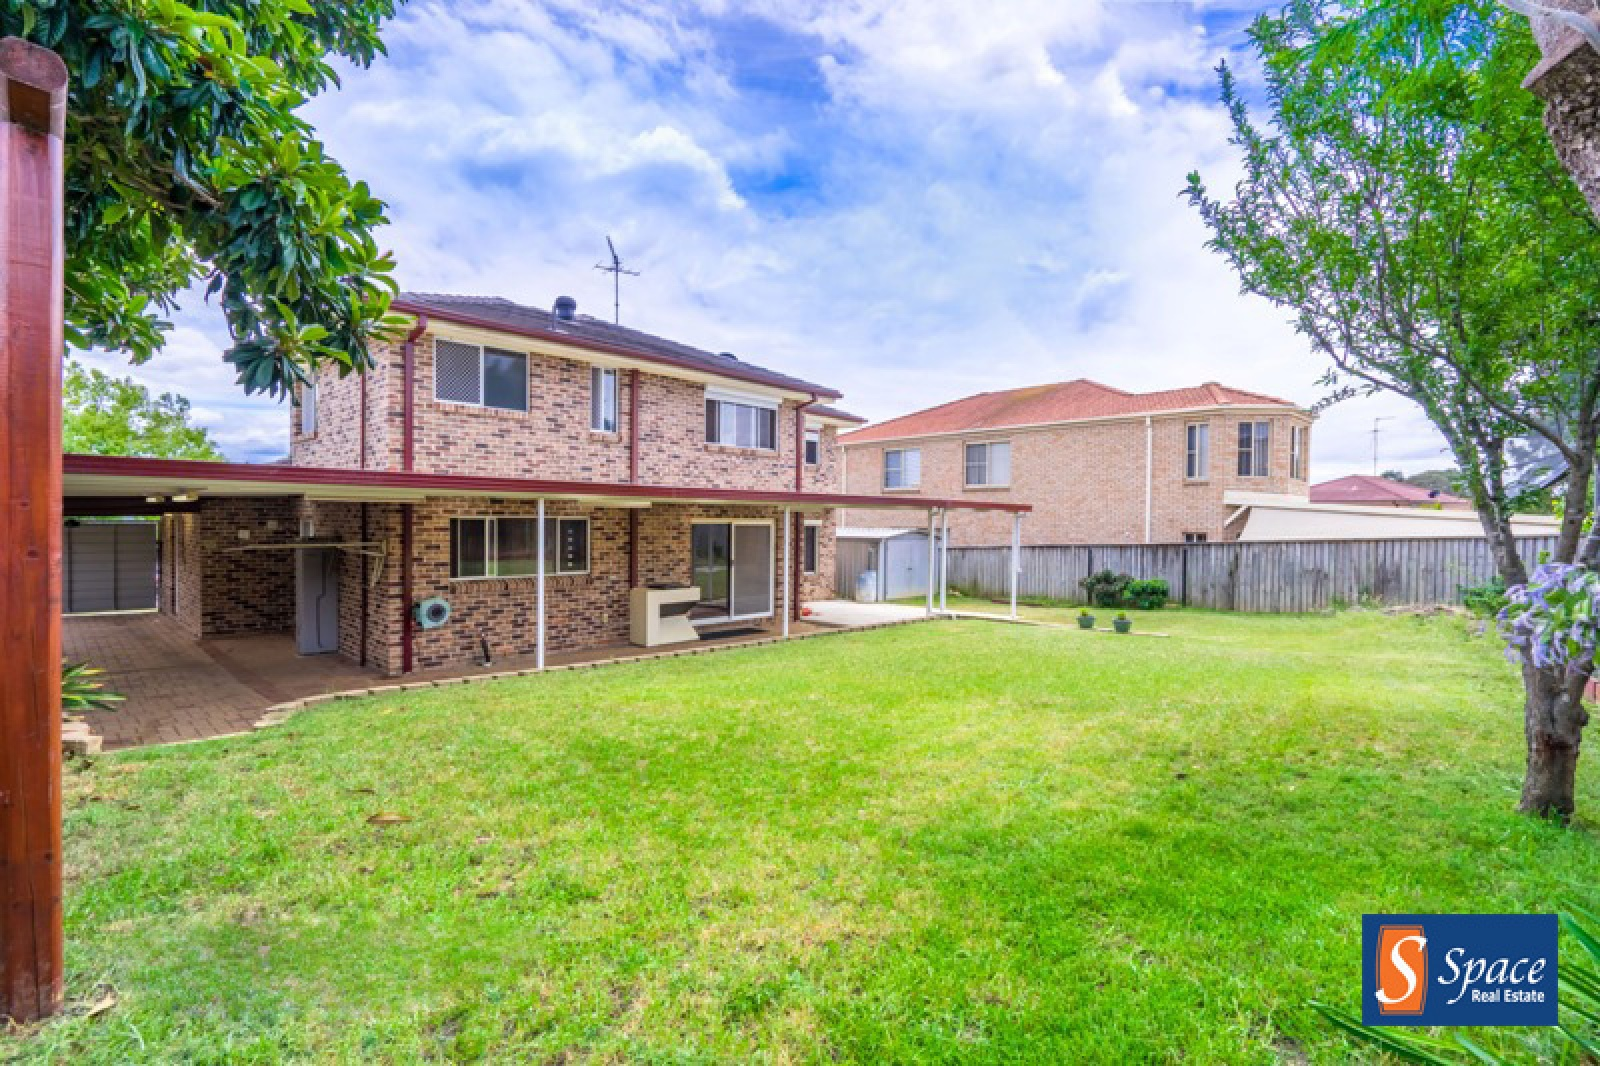 26 Fairwater Drive,Harrington Park,NSW,4 Bedrooms Bedrooms,2 BathroomsBathrooms,House,Fairwater Drive,1360